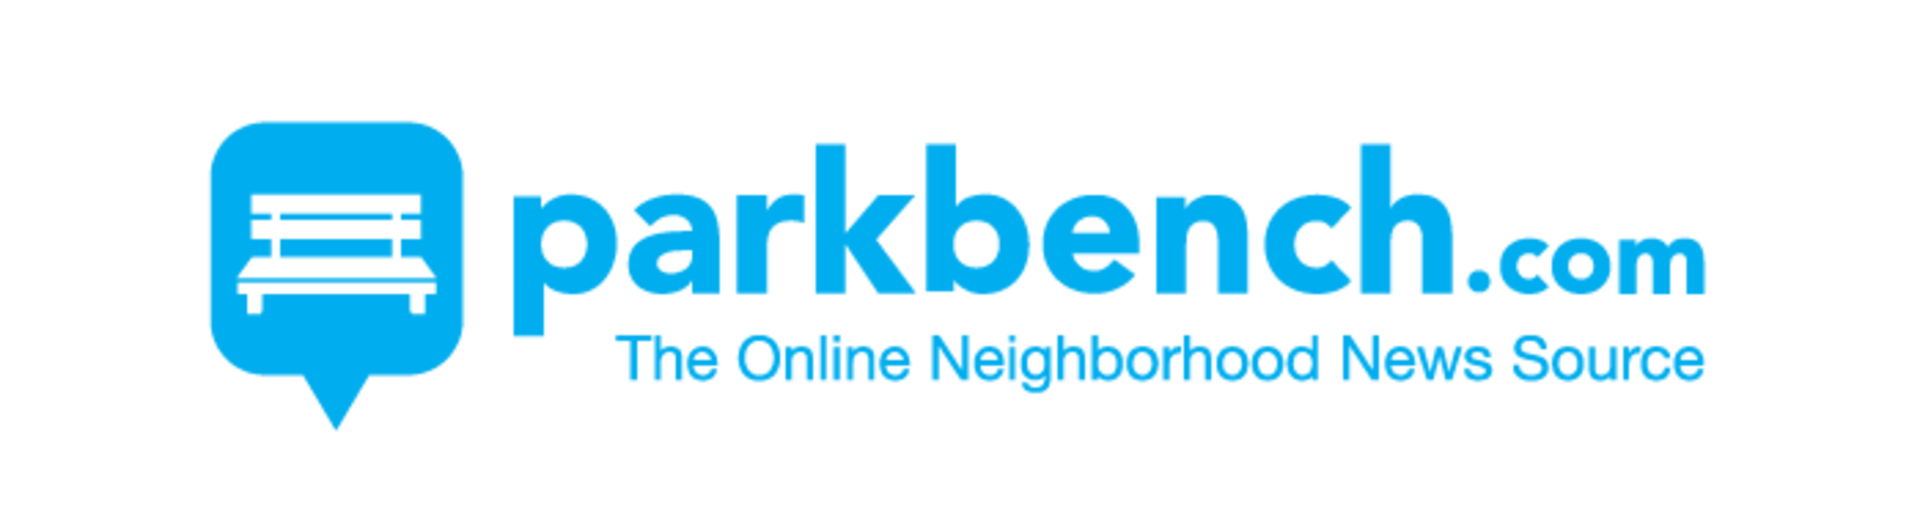 Parkbench.com is now on Signal Mountain, in Red Bank and downtown Chattanooga – Fort Wood